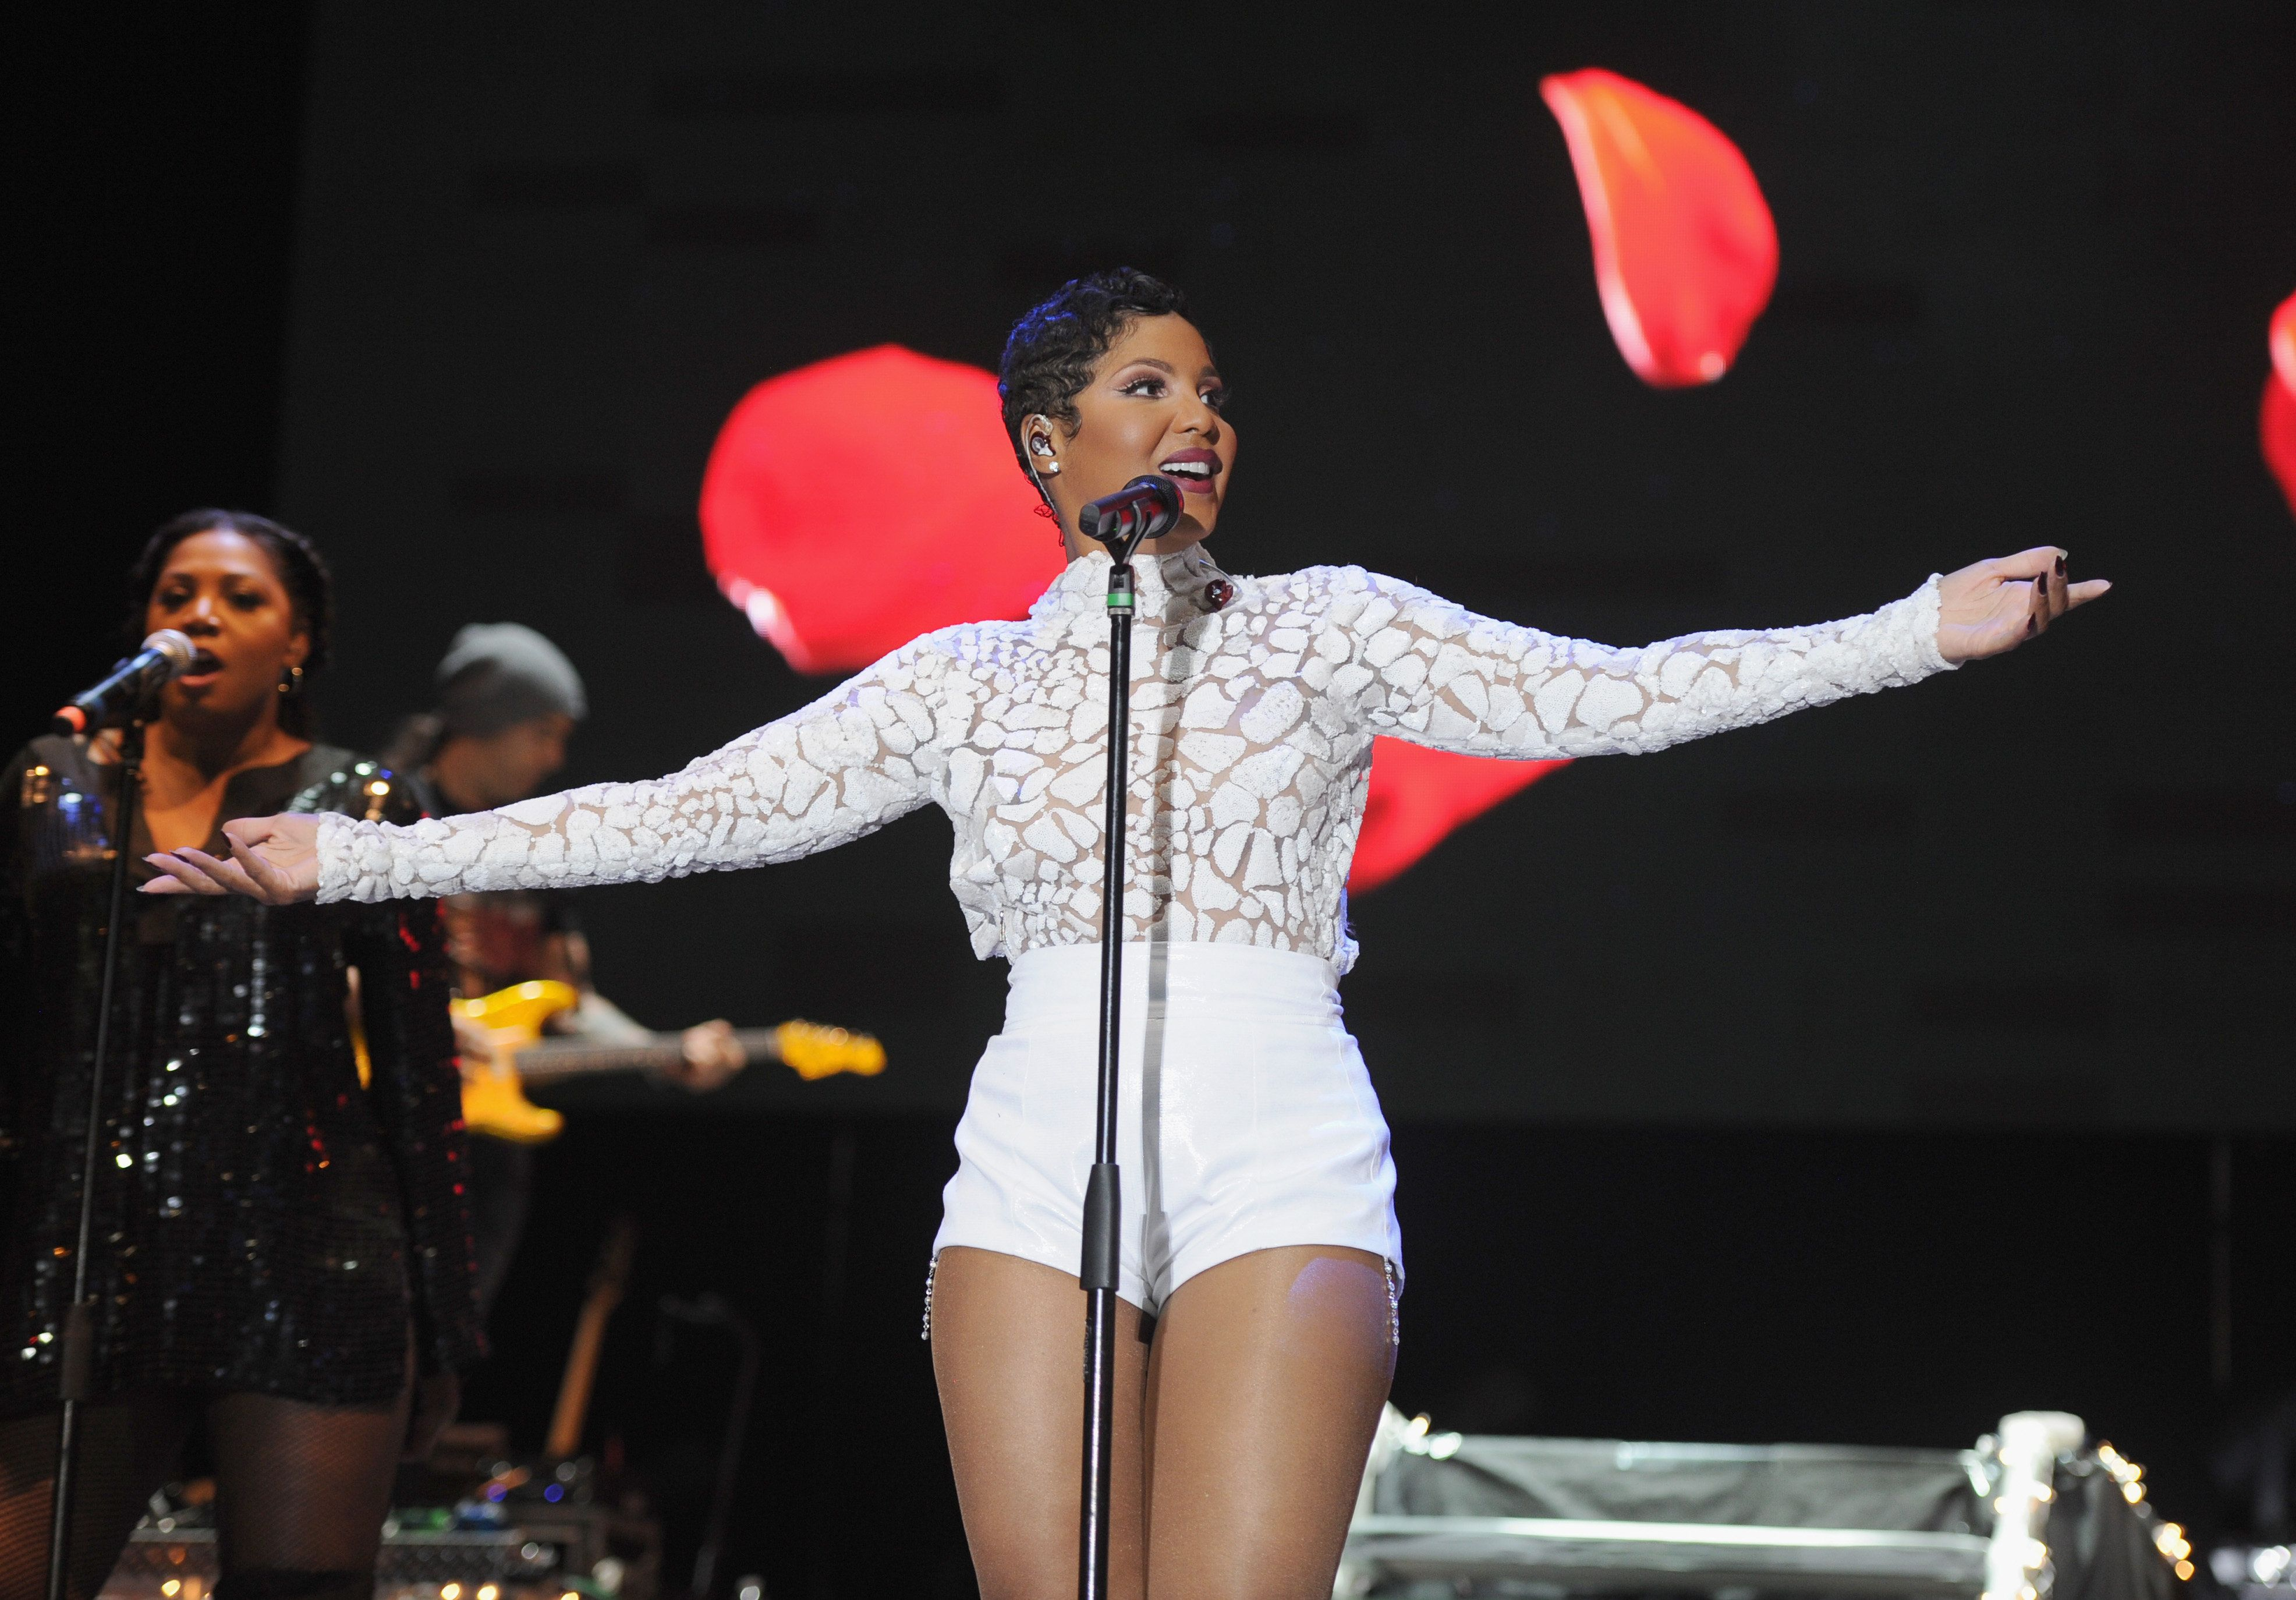 MIAMI GARDENS, FL - MARCH 21:  Toni Braxton performs onstage at the 10th Annual Jazz  in The Gardens: Celebrating 10 Years of Great Music at Sun Life Stadium on March 21, 2015 in Miami Gardens, Florida.  (Photo by Larry Marano/Getty Images for Jazz in the Gardens)